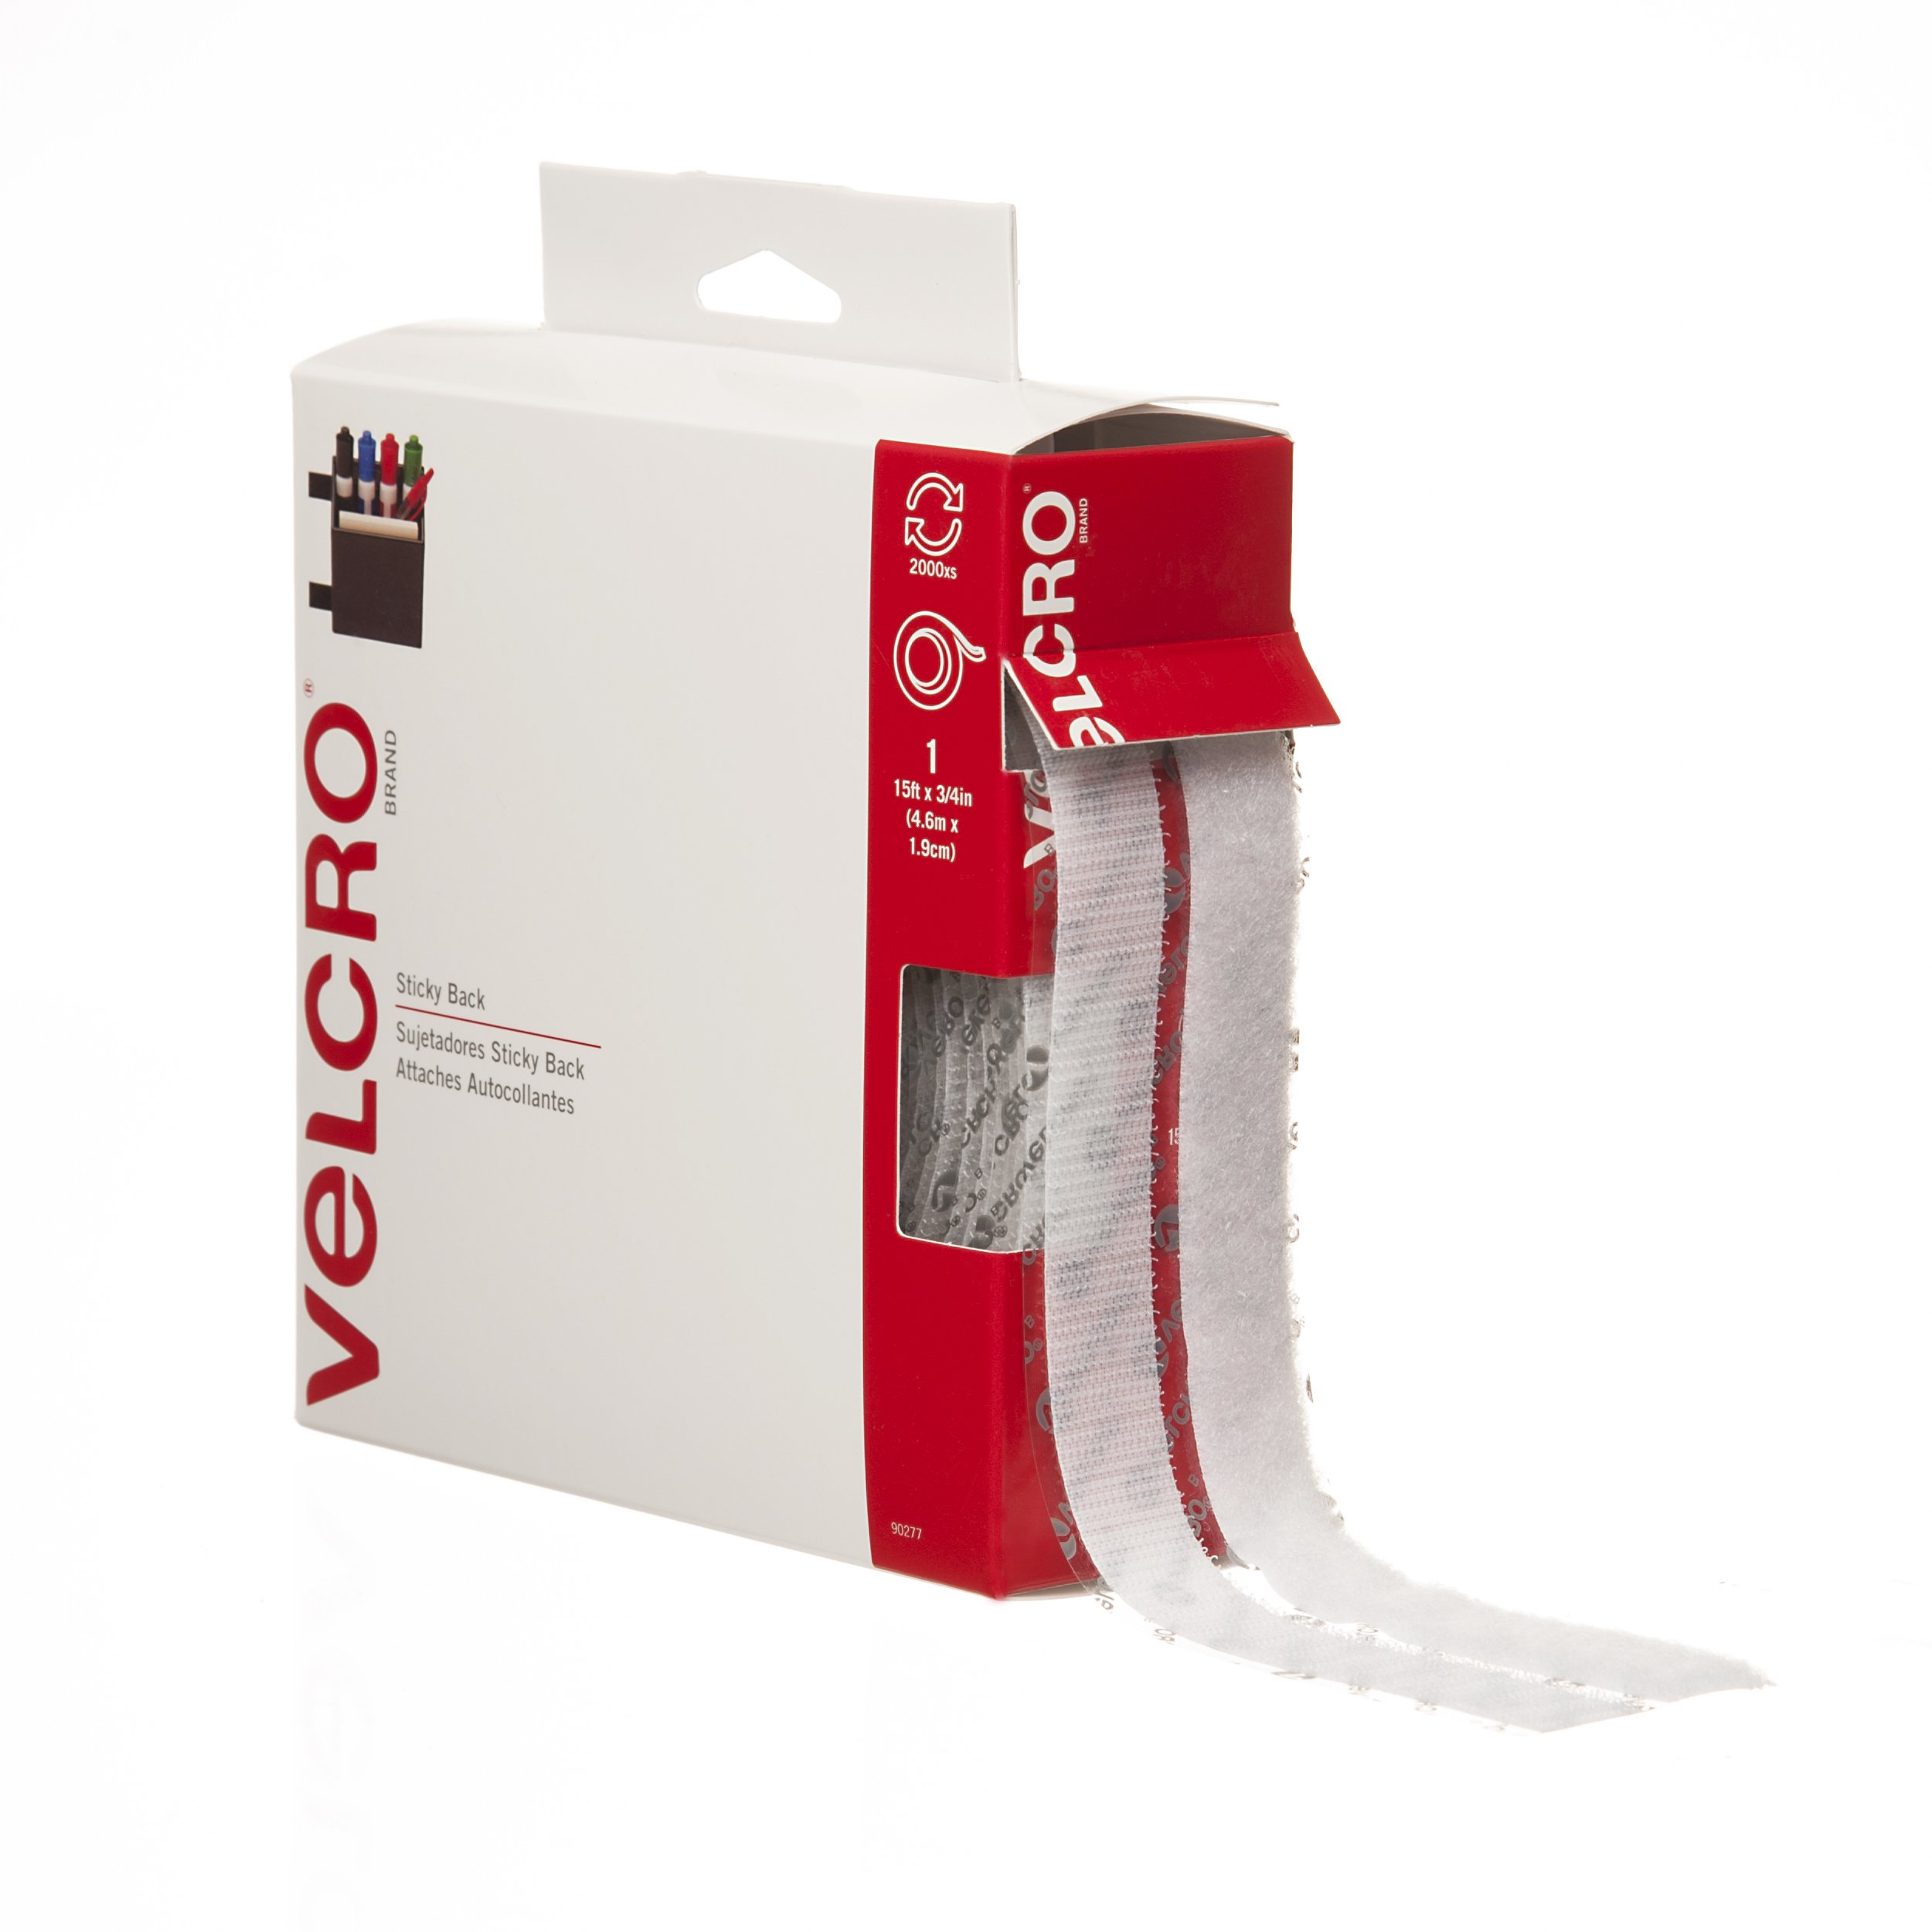 VELCRO Brand - Sticky Back Hook and Loop Fasteners| Perfect for Home or Office | 15ft x 3/4in Tape | White